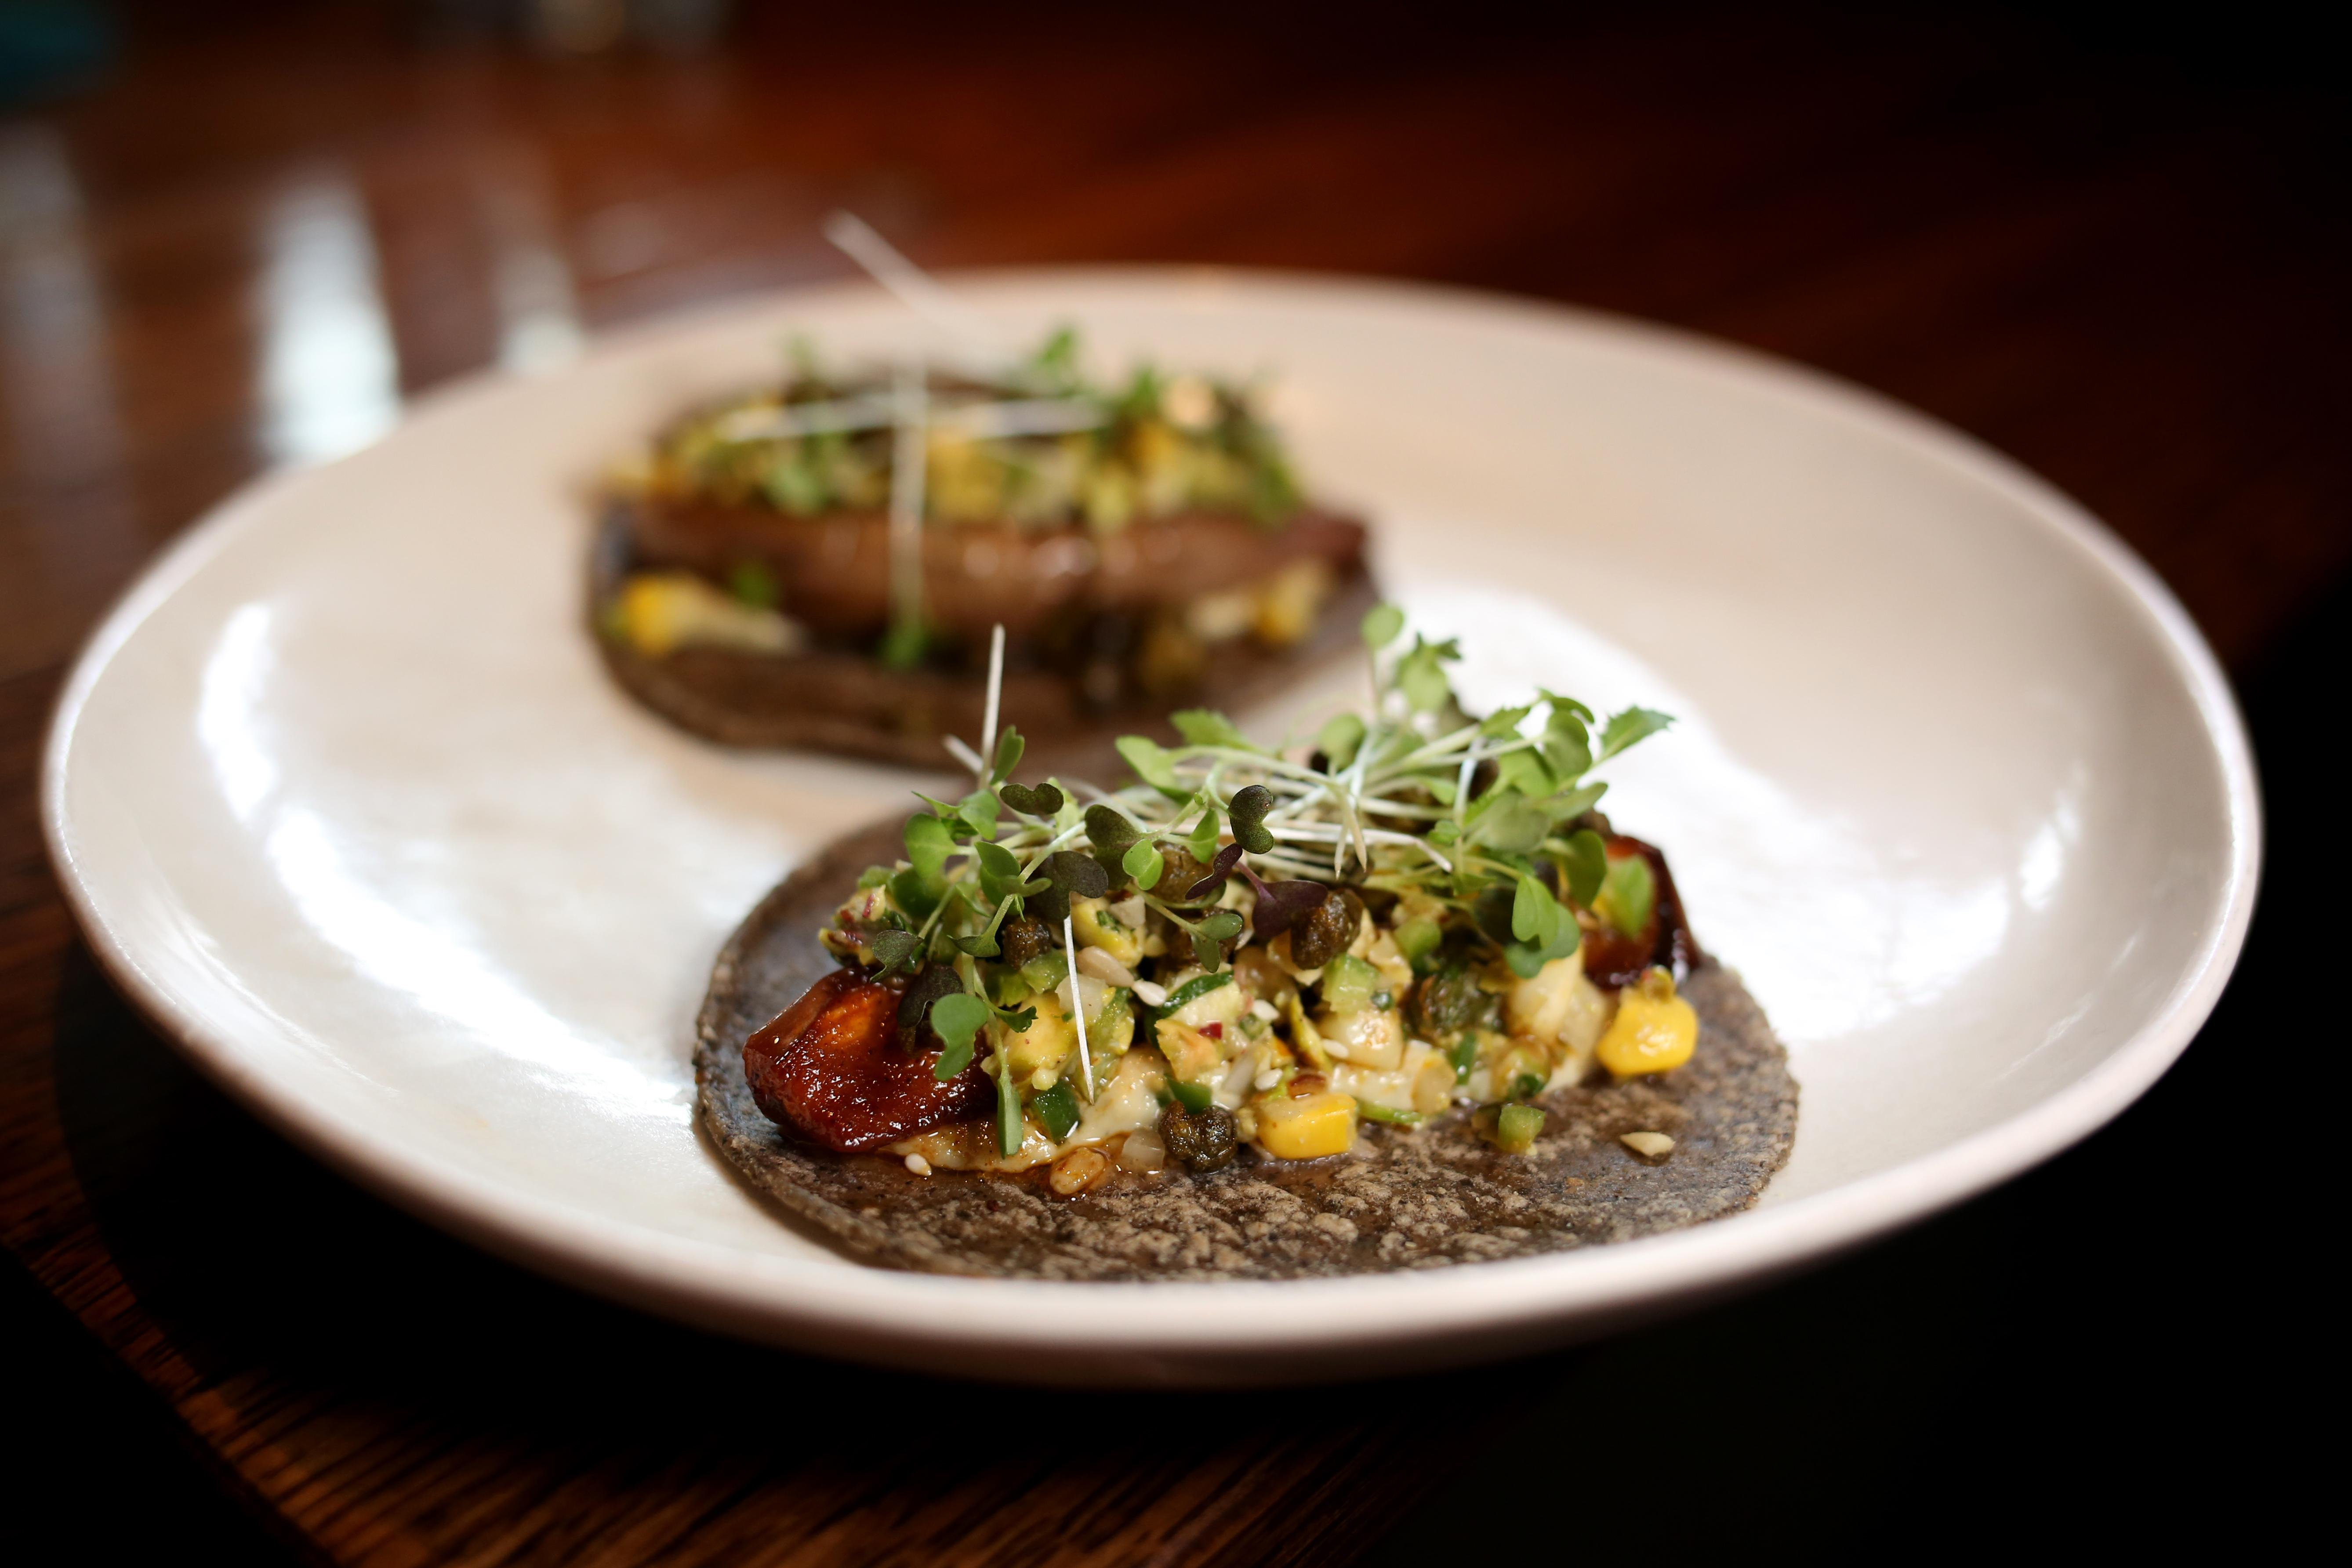 The fairytale taco is, as the name suggests, a little whimsical. However, the pepita-sesame crema keeps it rooted in tradition. The grilled eggplant is also meaty, making it a good option for hungry vegetarians. (Amanda Andrade-Rhoades/DC Refined)